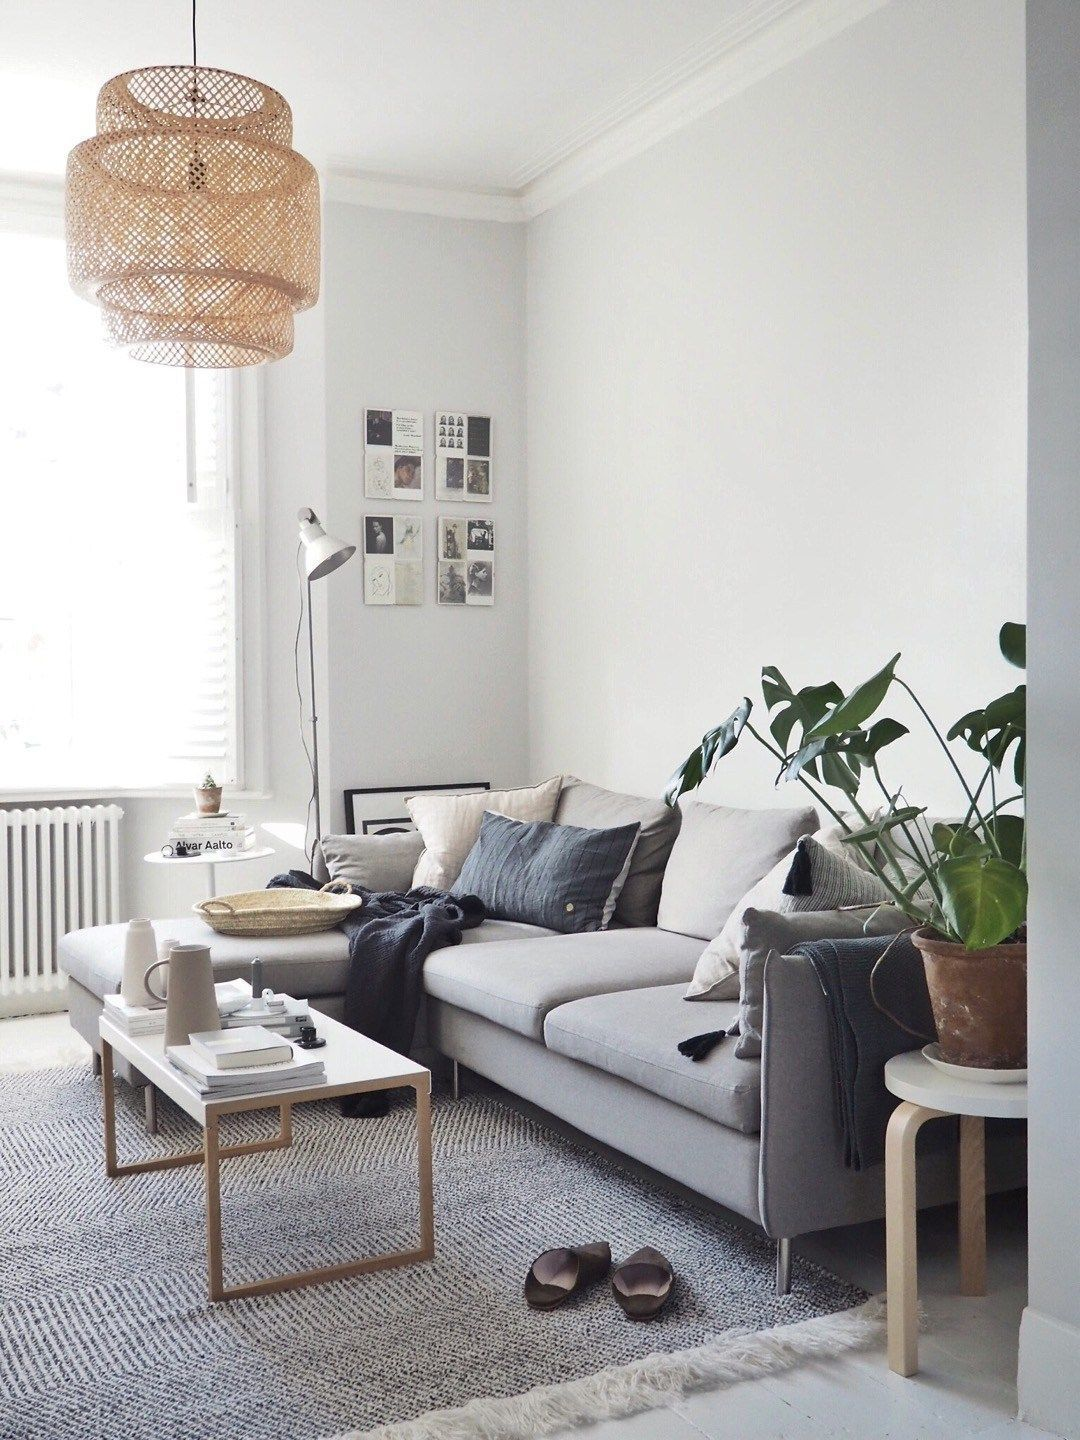 80 Best Small Apartment Living Rooms From Across the World ... on Small Living Room Ideas 2019  id=44590